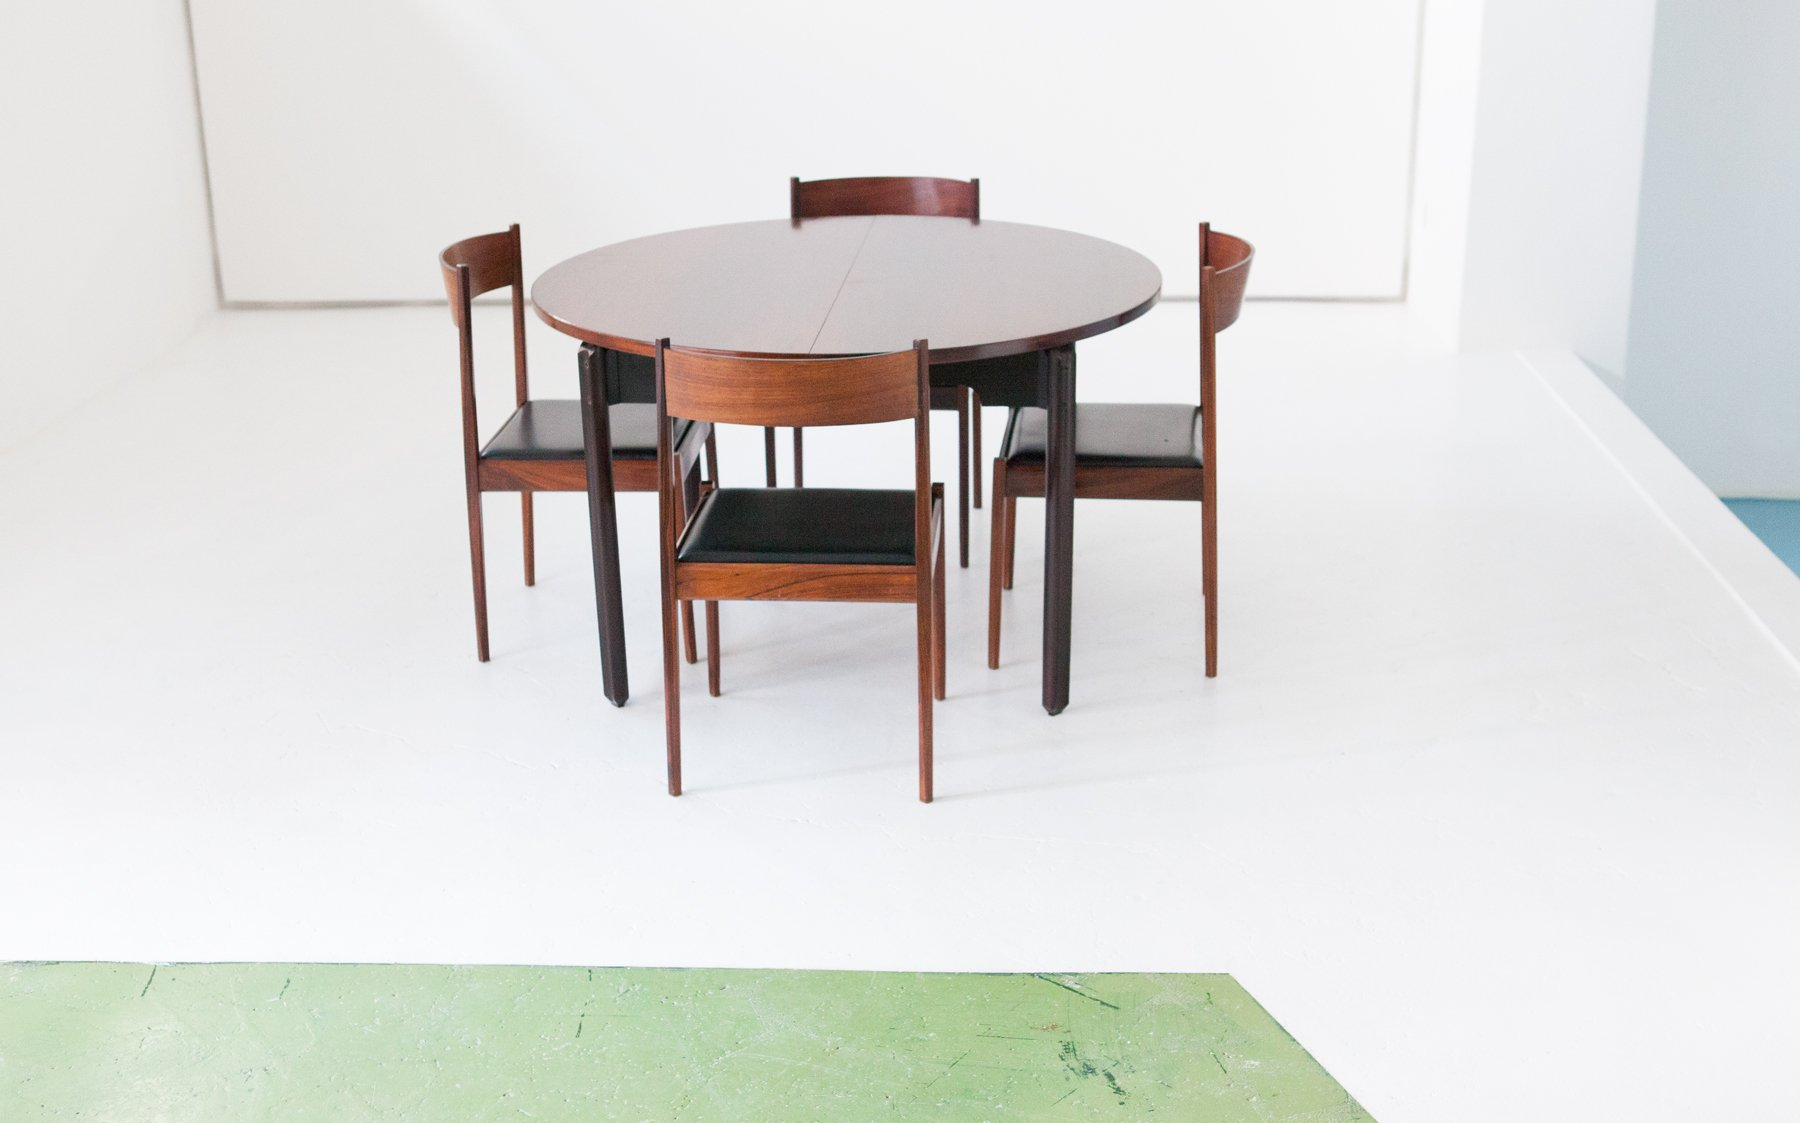 Dining Table U0026 4 Chairs In Rosewood From Stildomus, 1960s